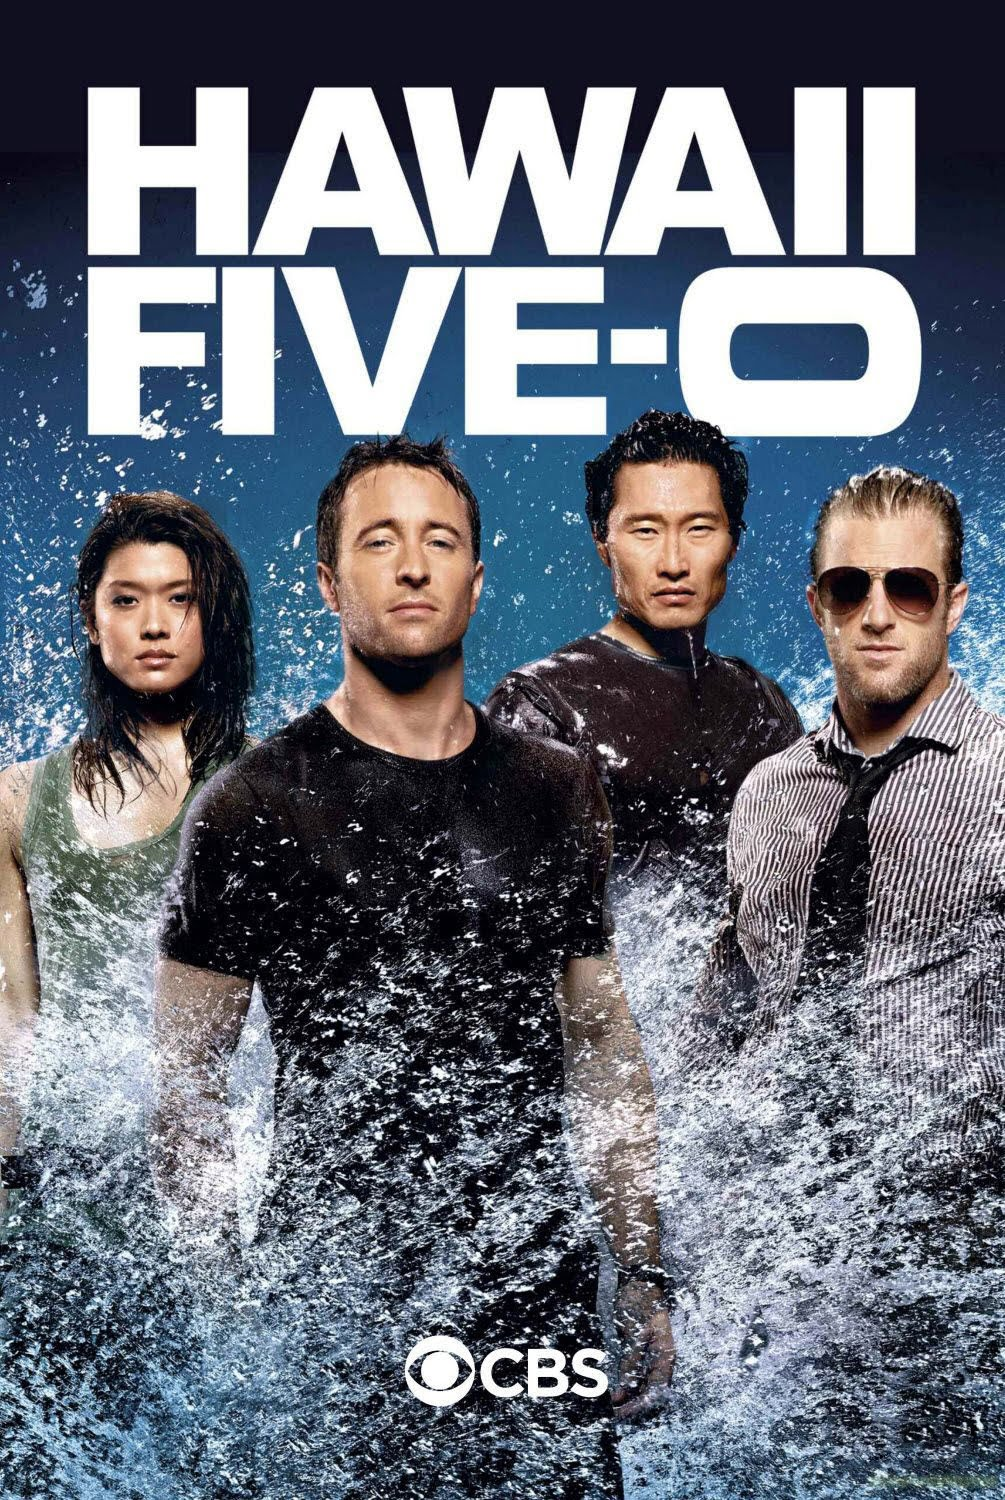 hawaii five o 1 Download Hawaii Five 0 S04E19 Legenda Torrent